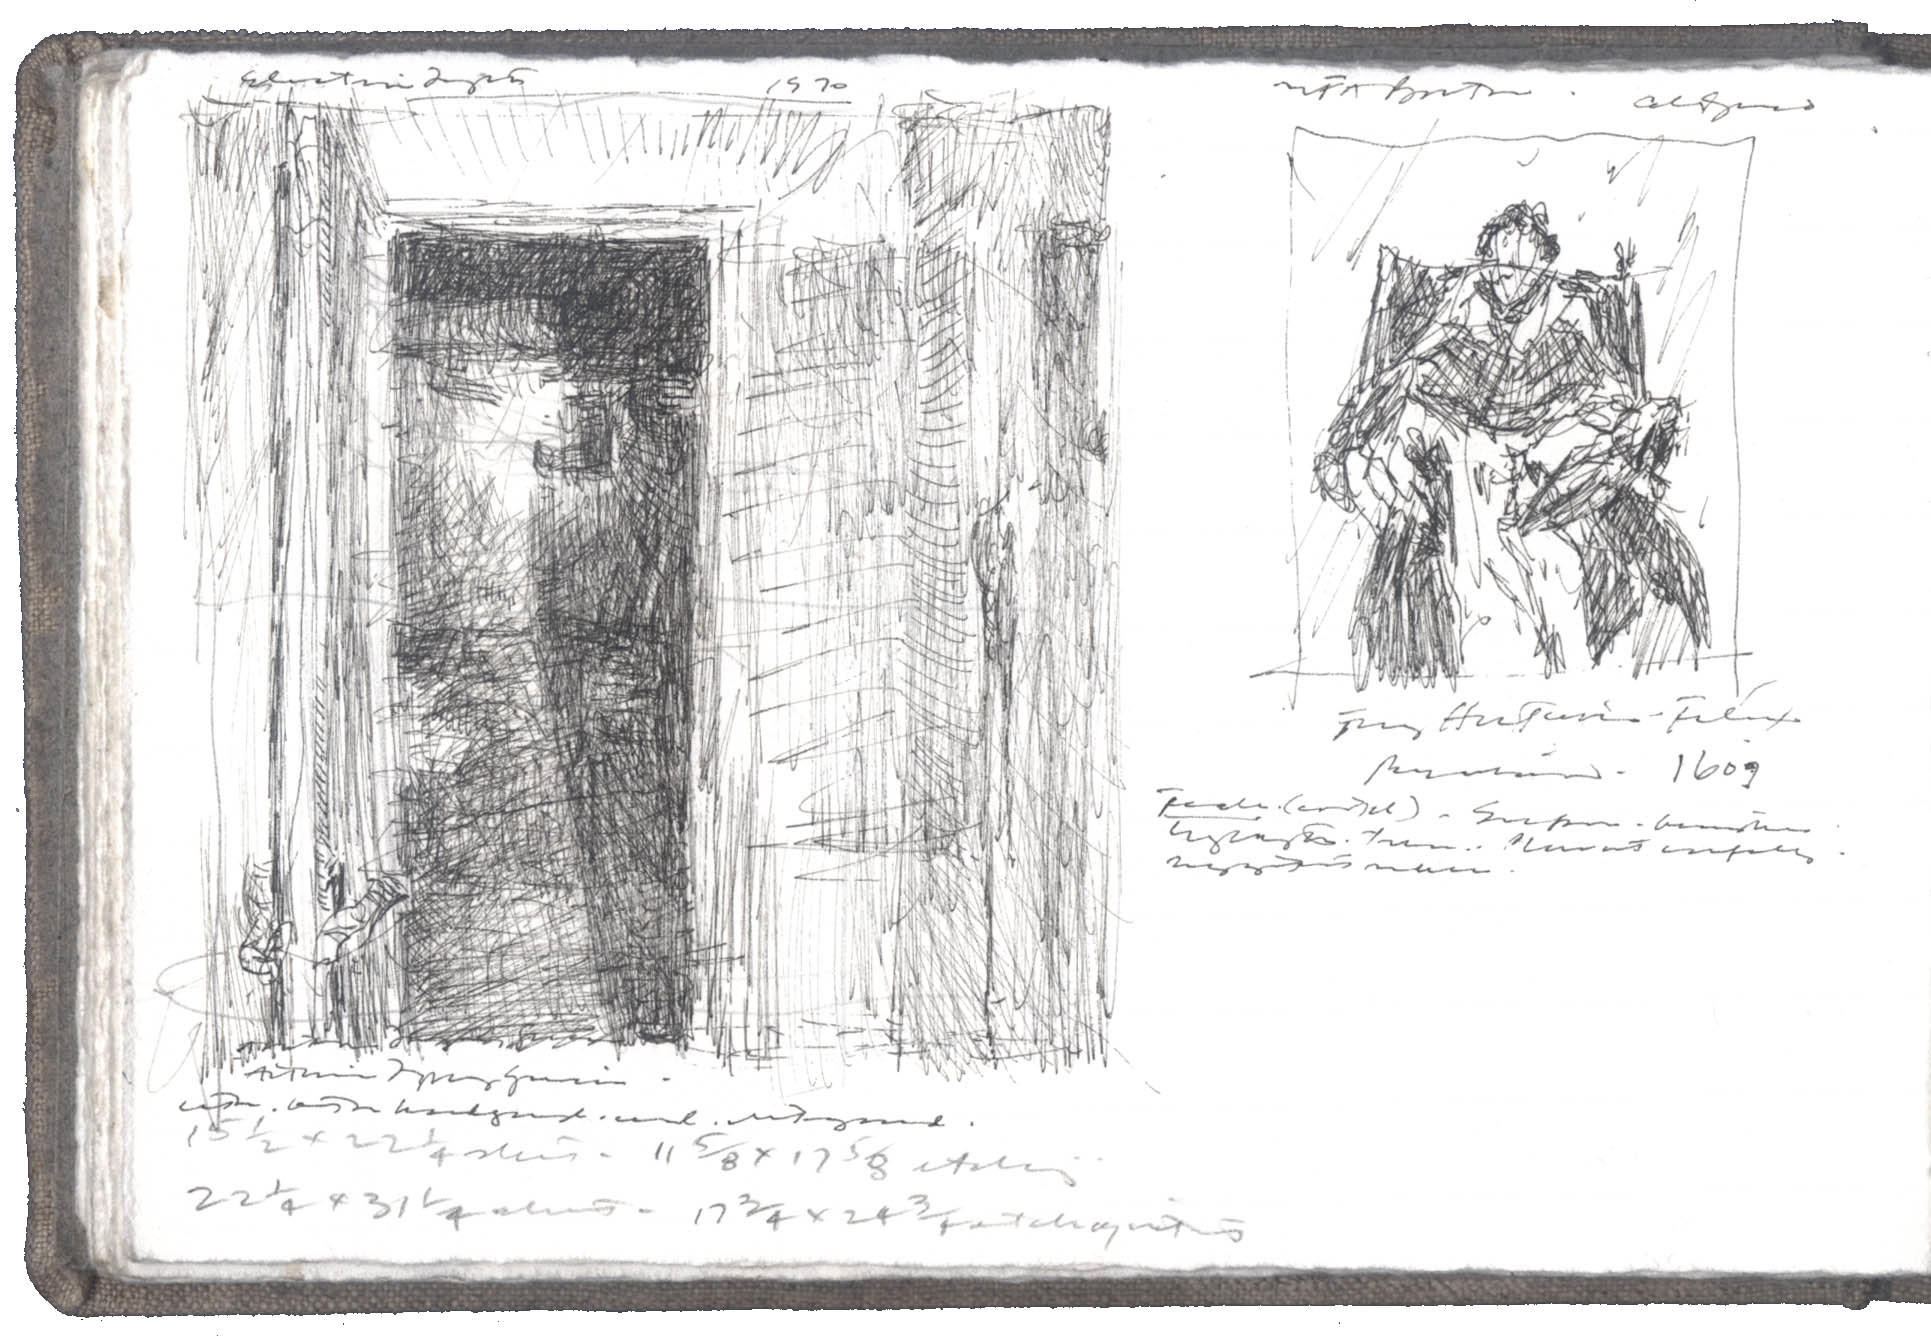 Sketches after works by Garcia-Lopez and El Greco image